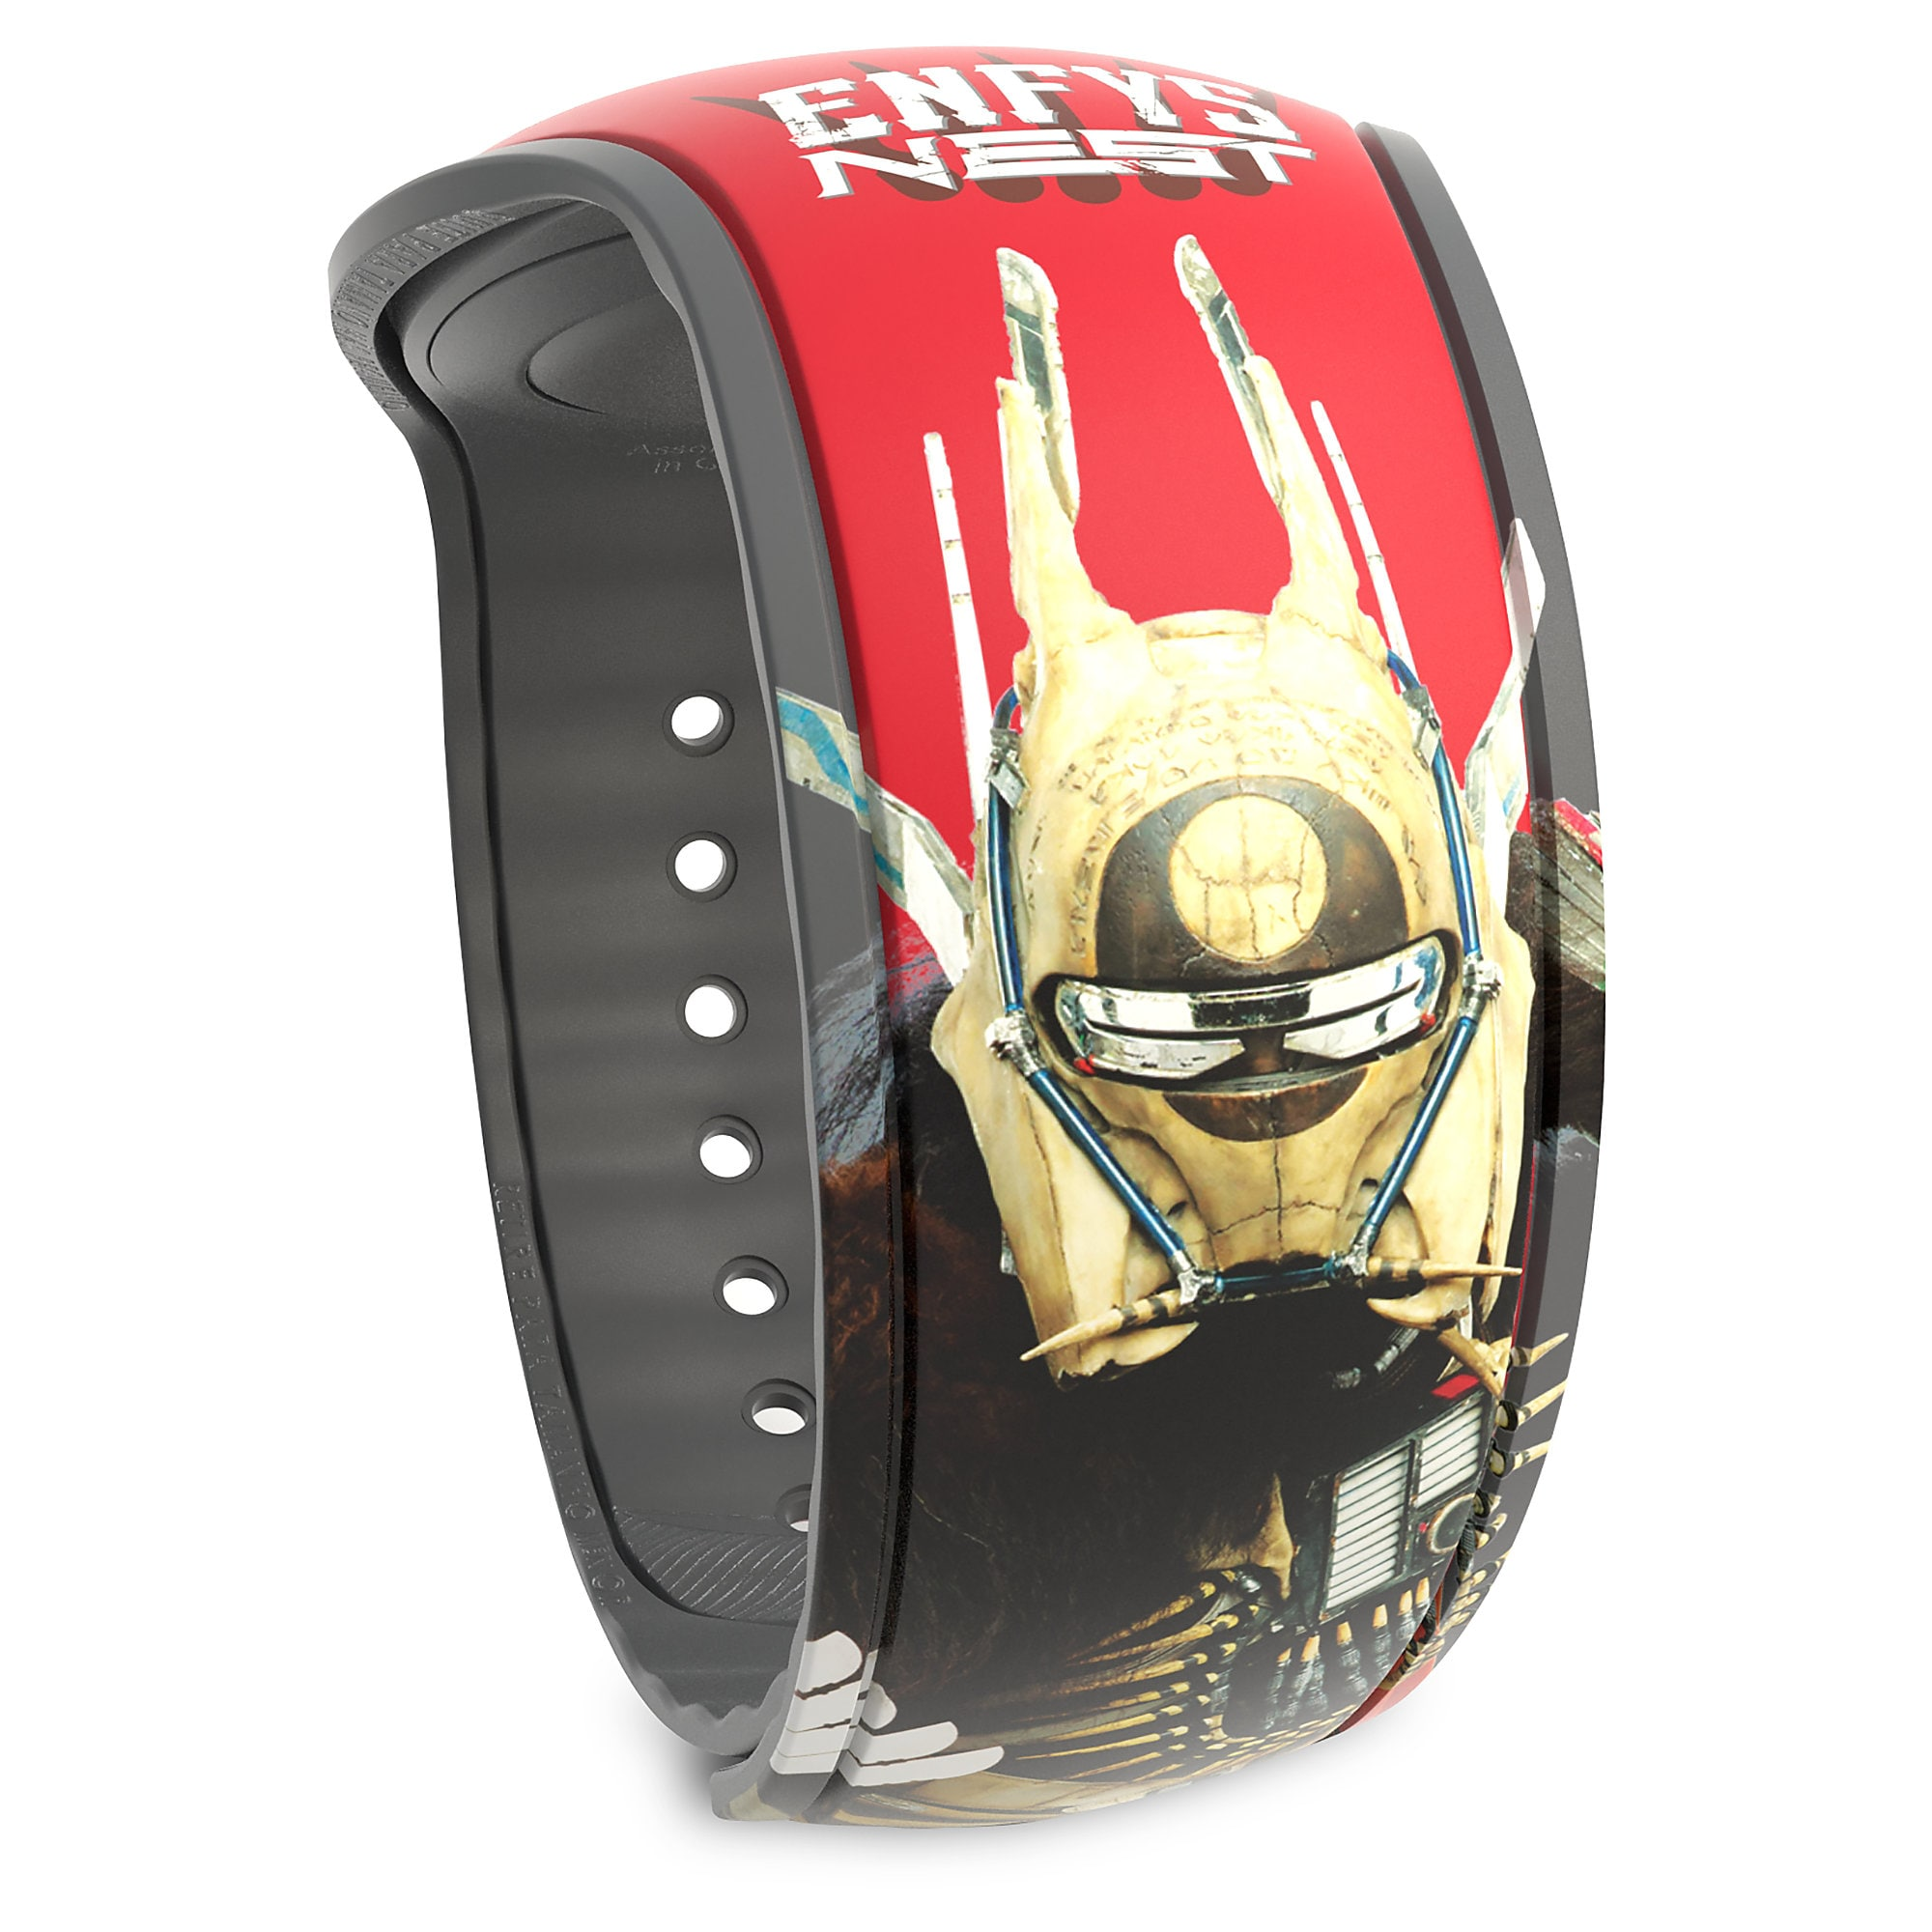 Enfys Nest MagicBand 2 - Solo: A Star Wars Story - Limited Edition